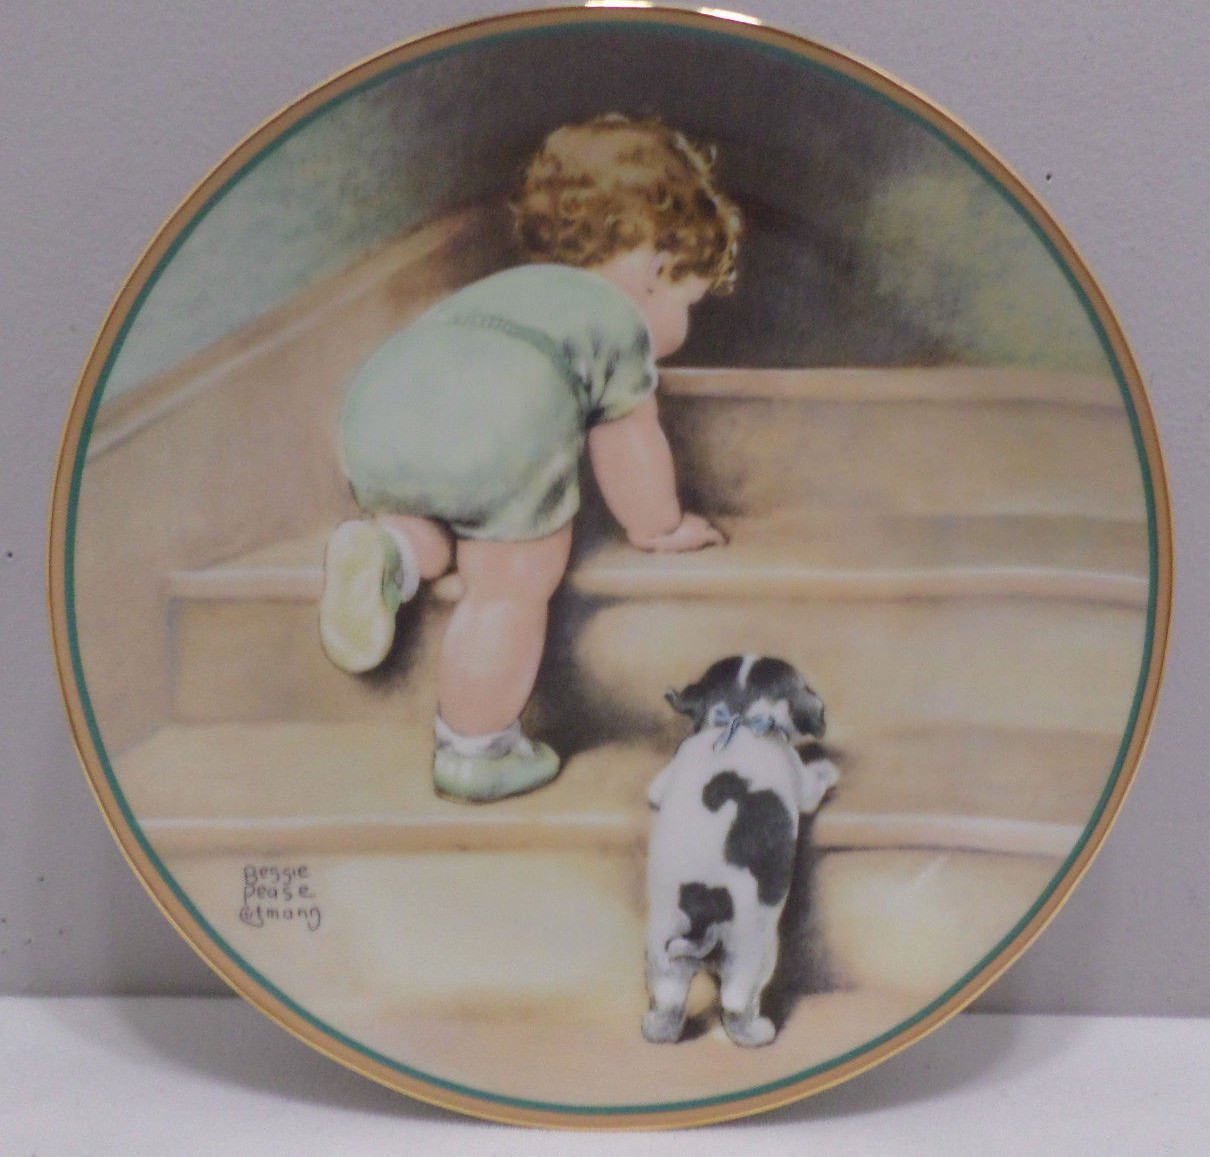 1986 Collector Plate On The Up and Up by Bessie Pease Gutmann #1482B